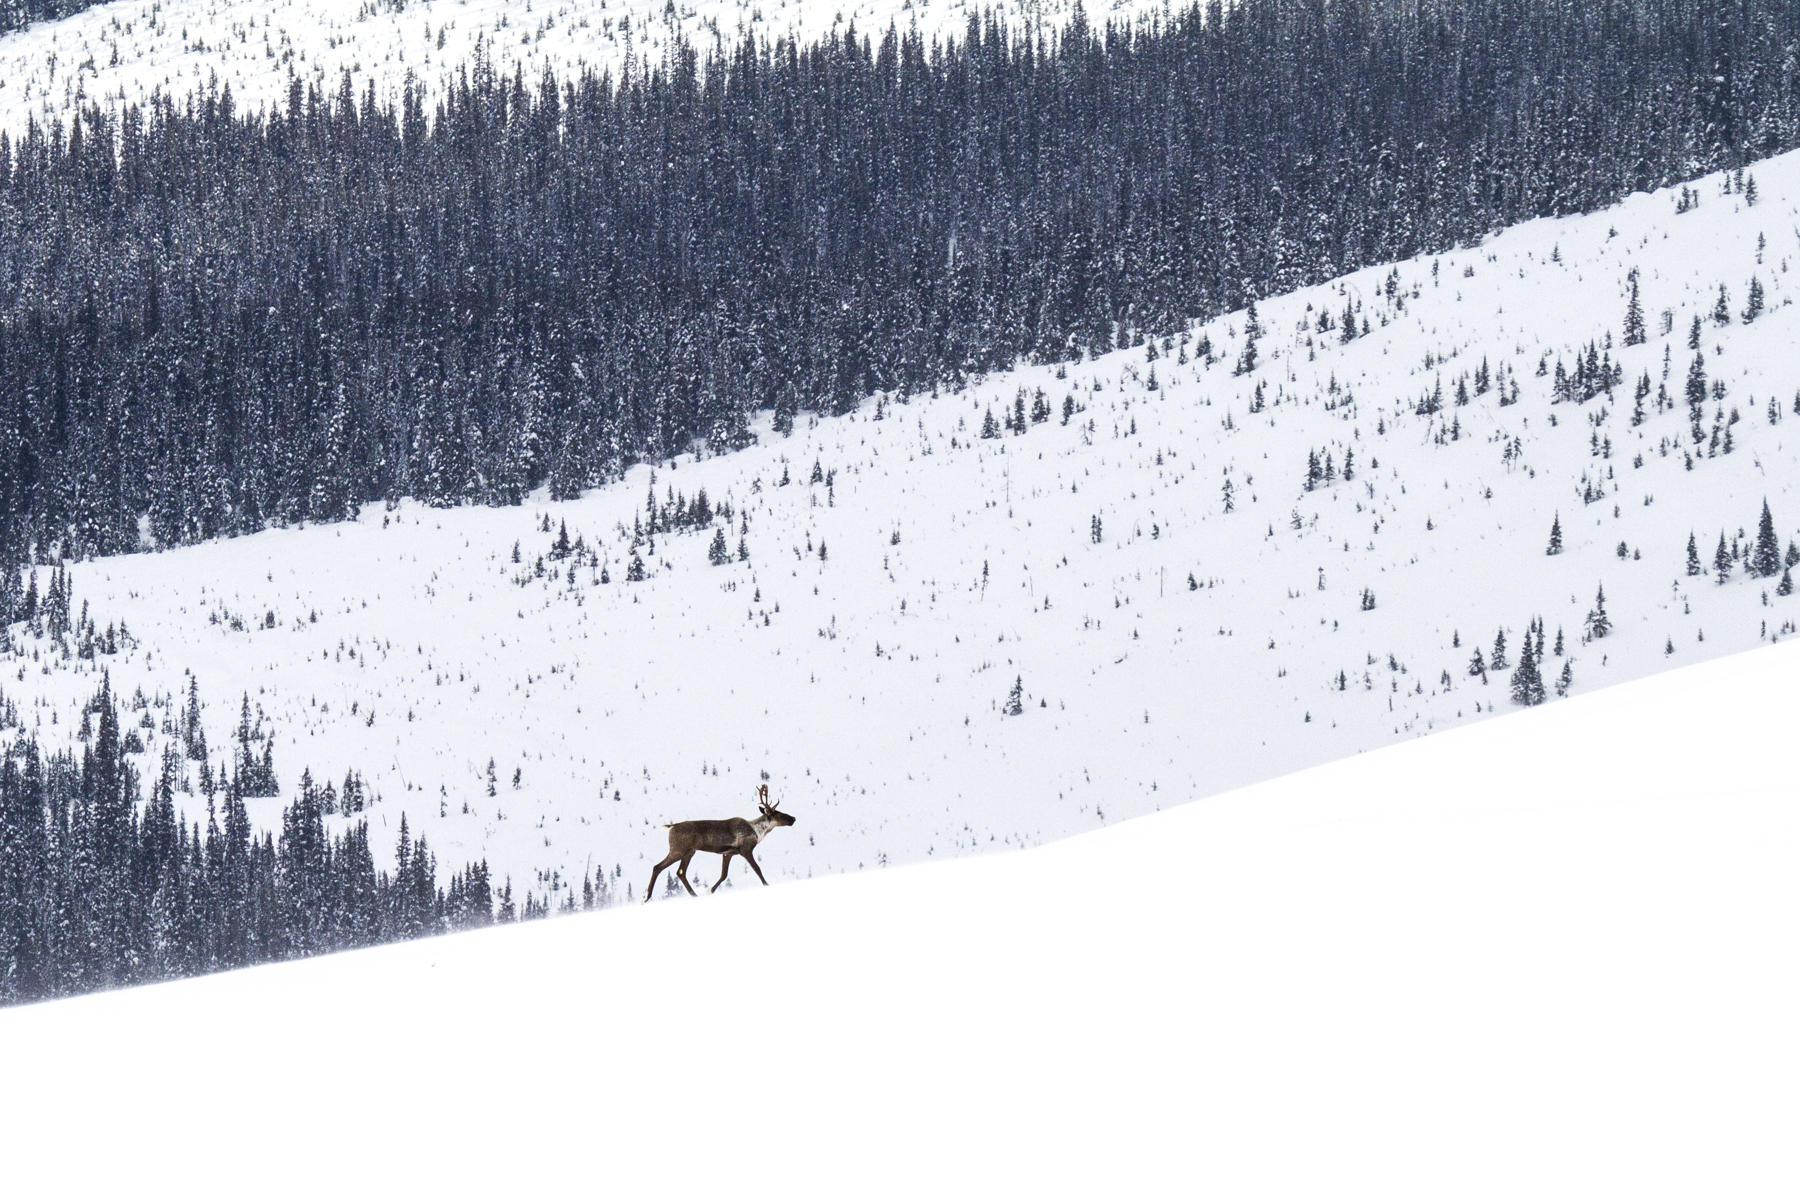 Concerns growing locally as Selkirk caribou herd diminishes